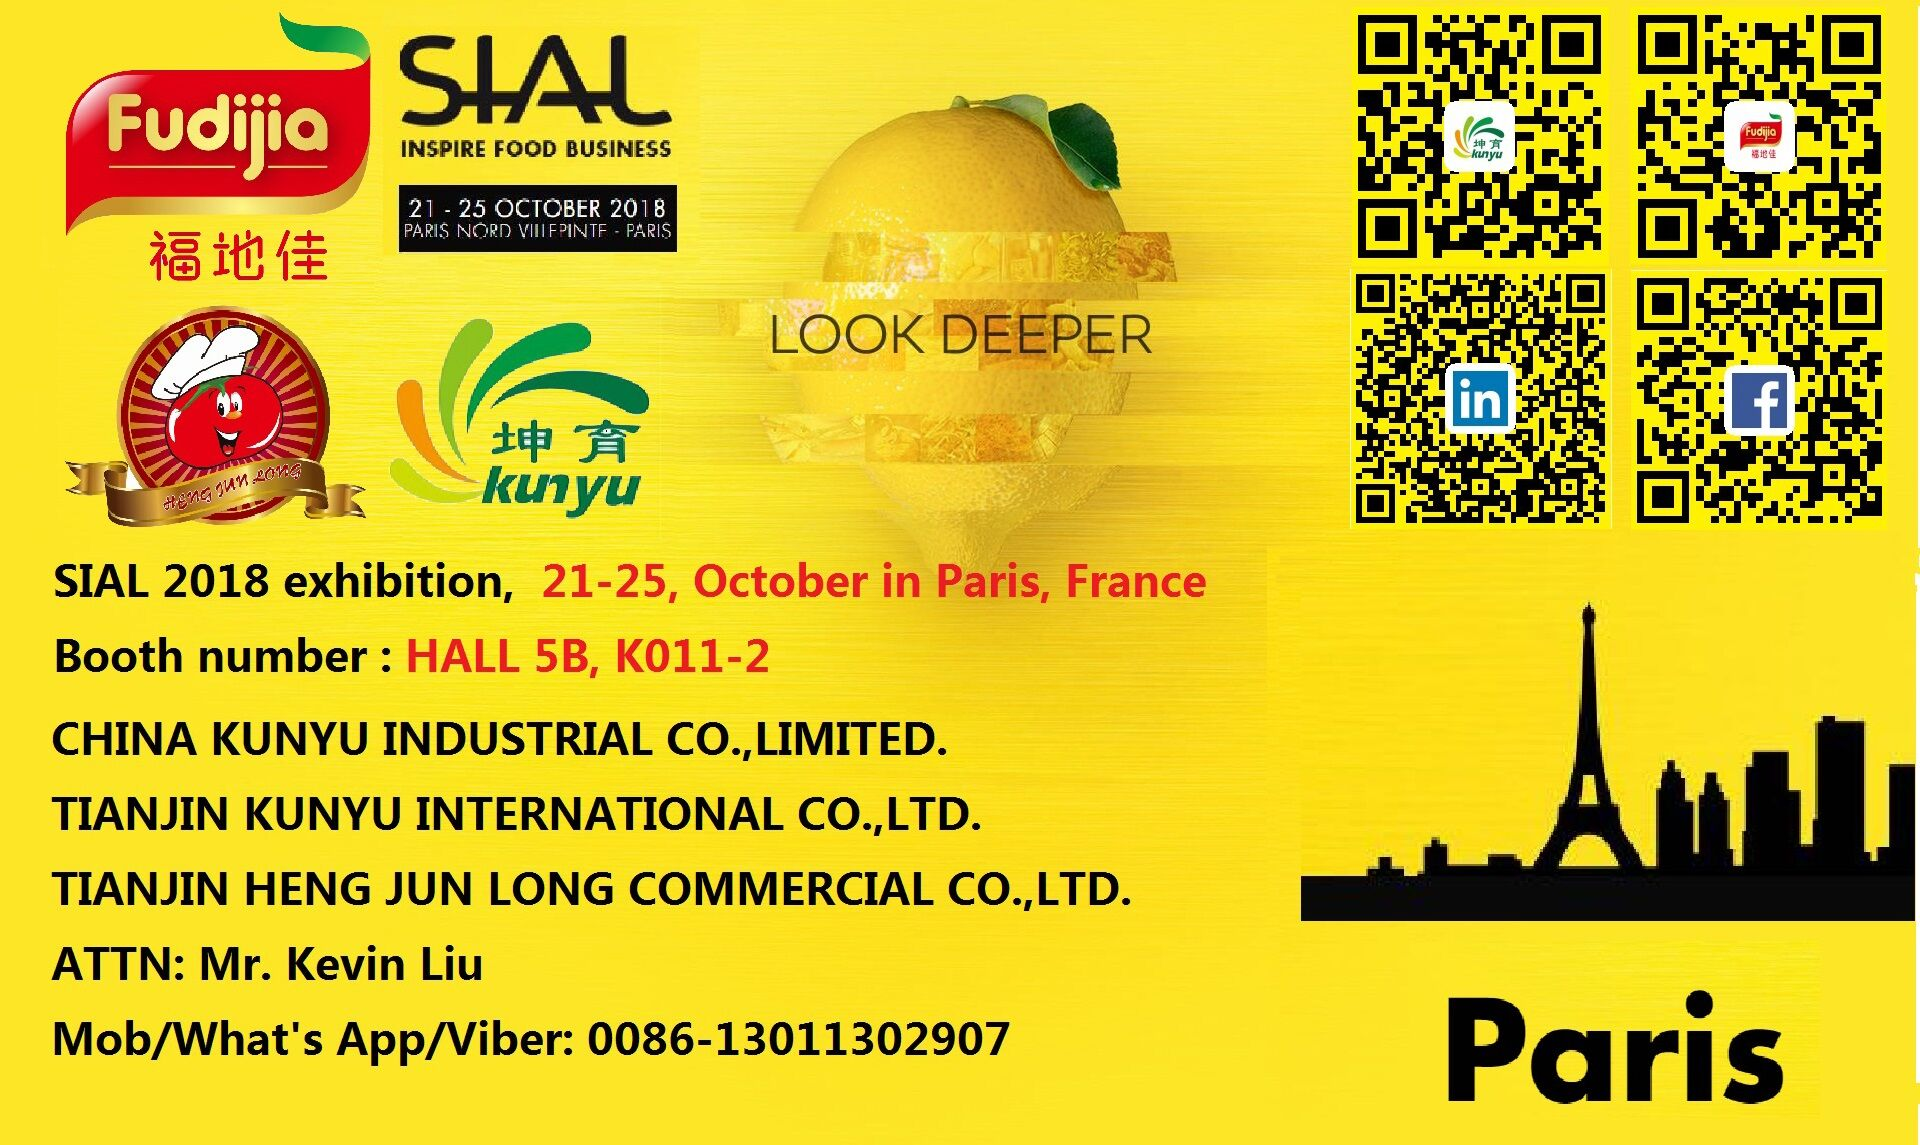 SIAL 2018 Exhibition